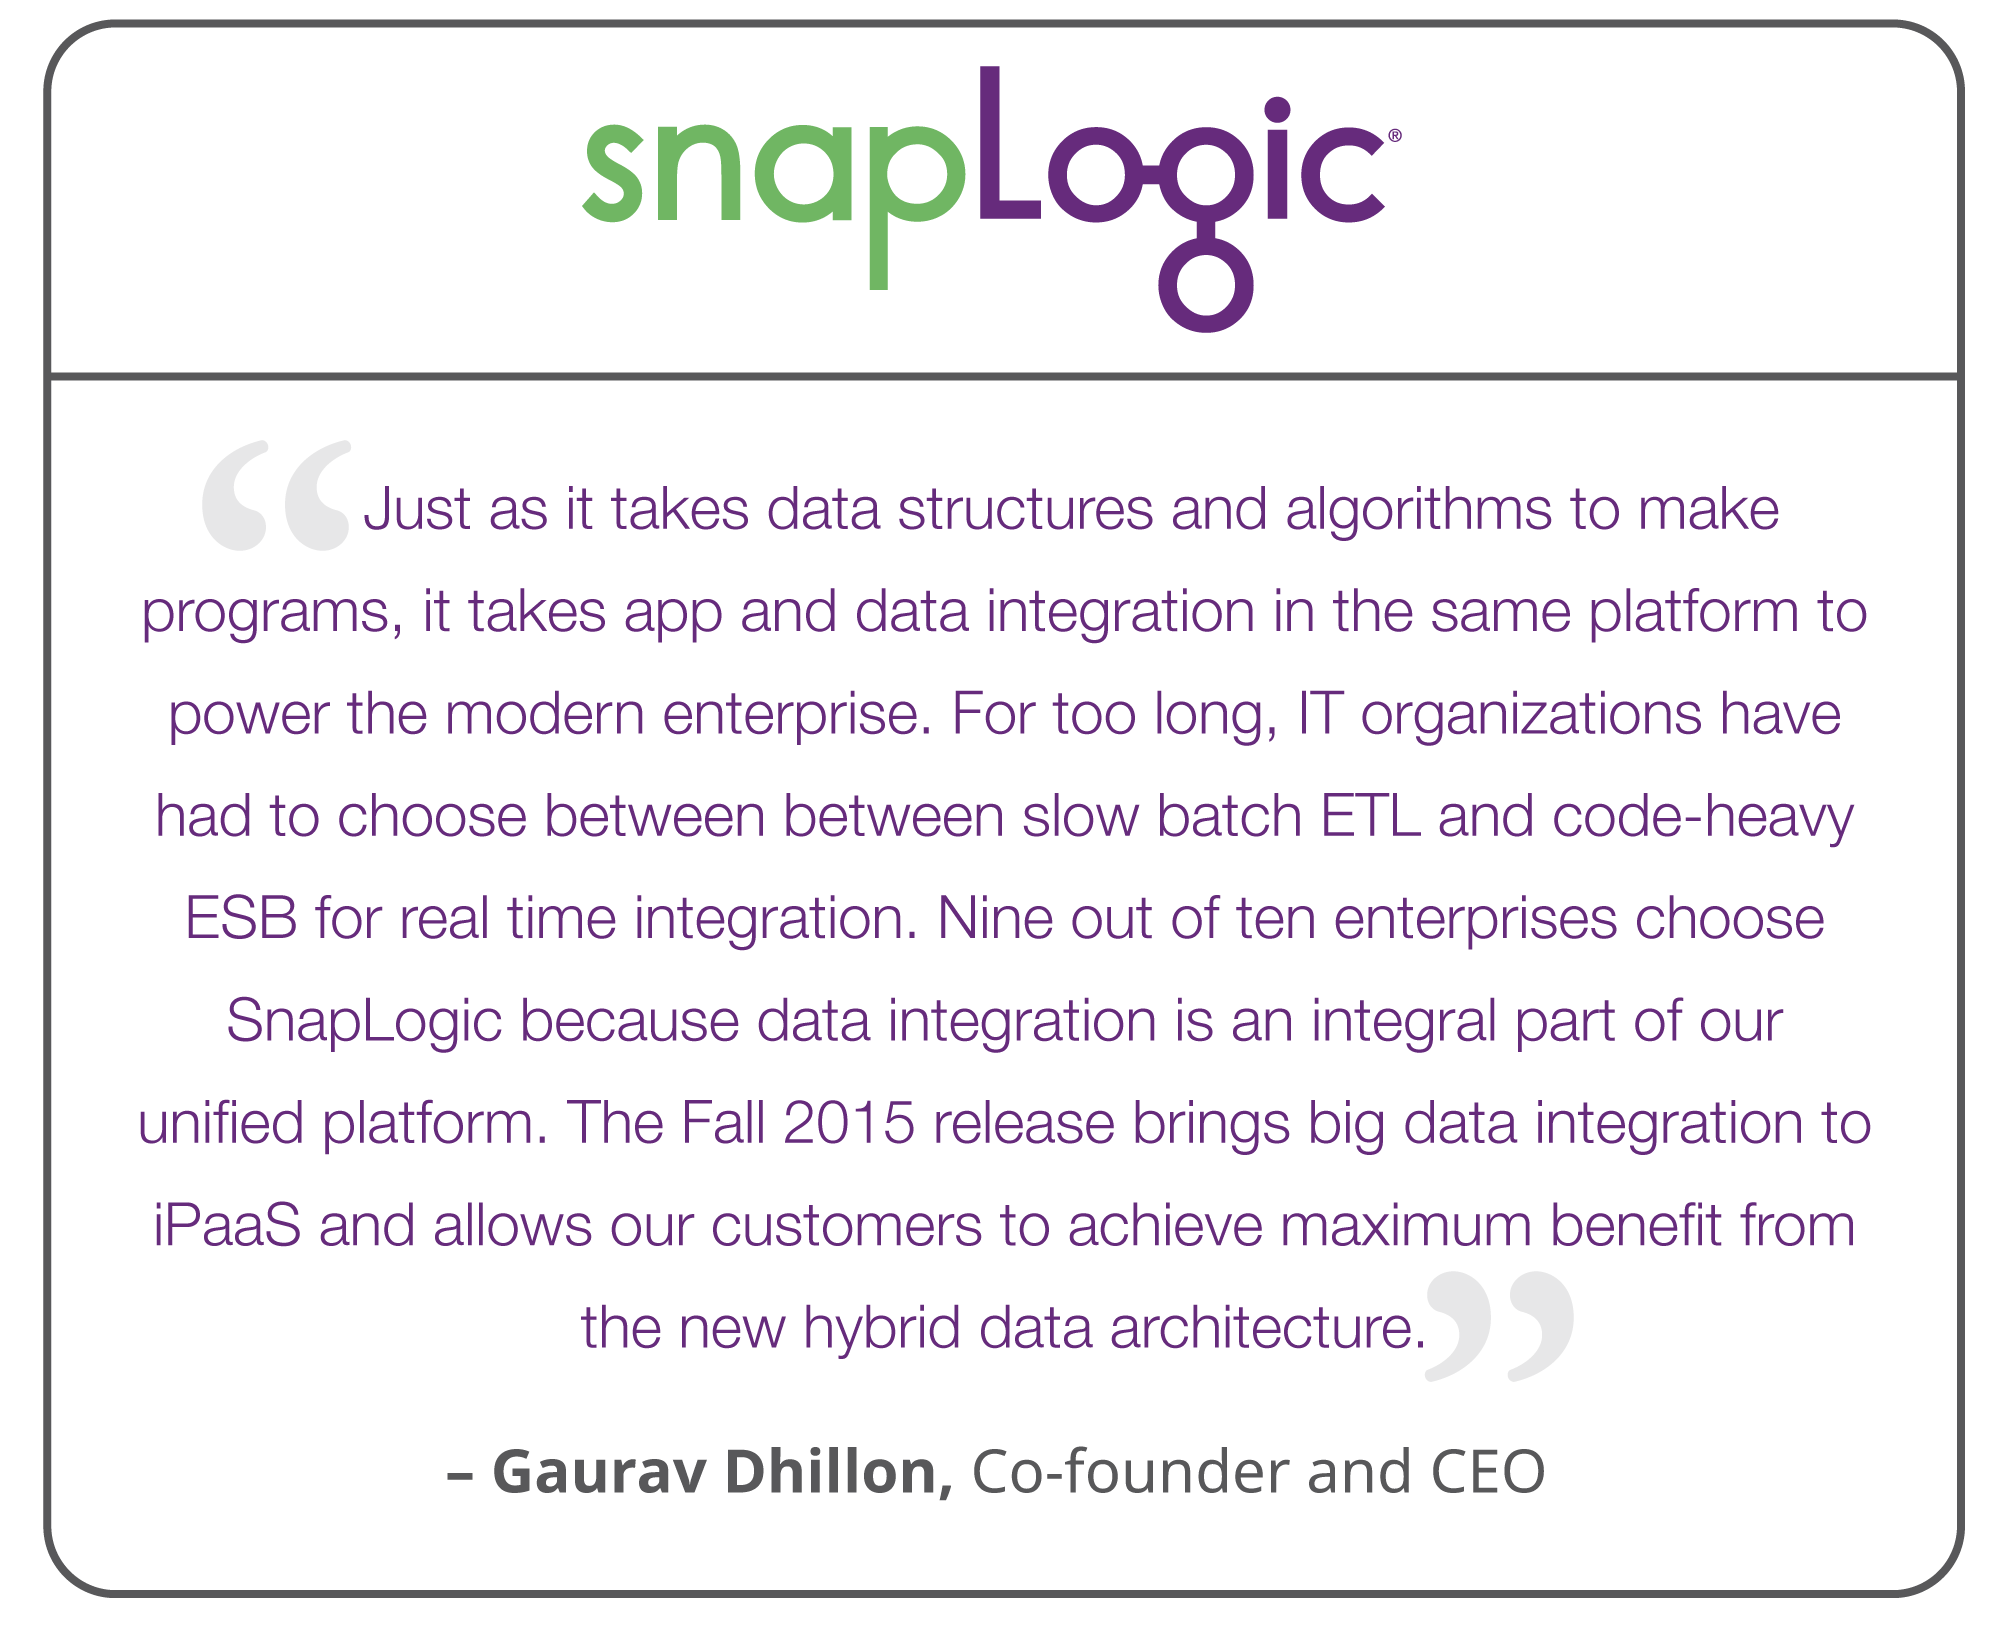 SnapLogic Fall 2015